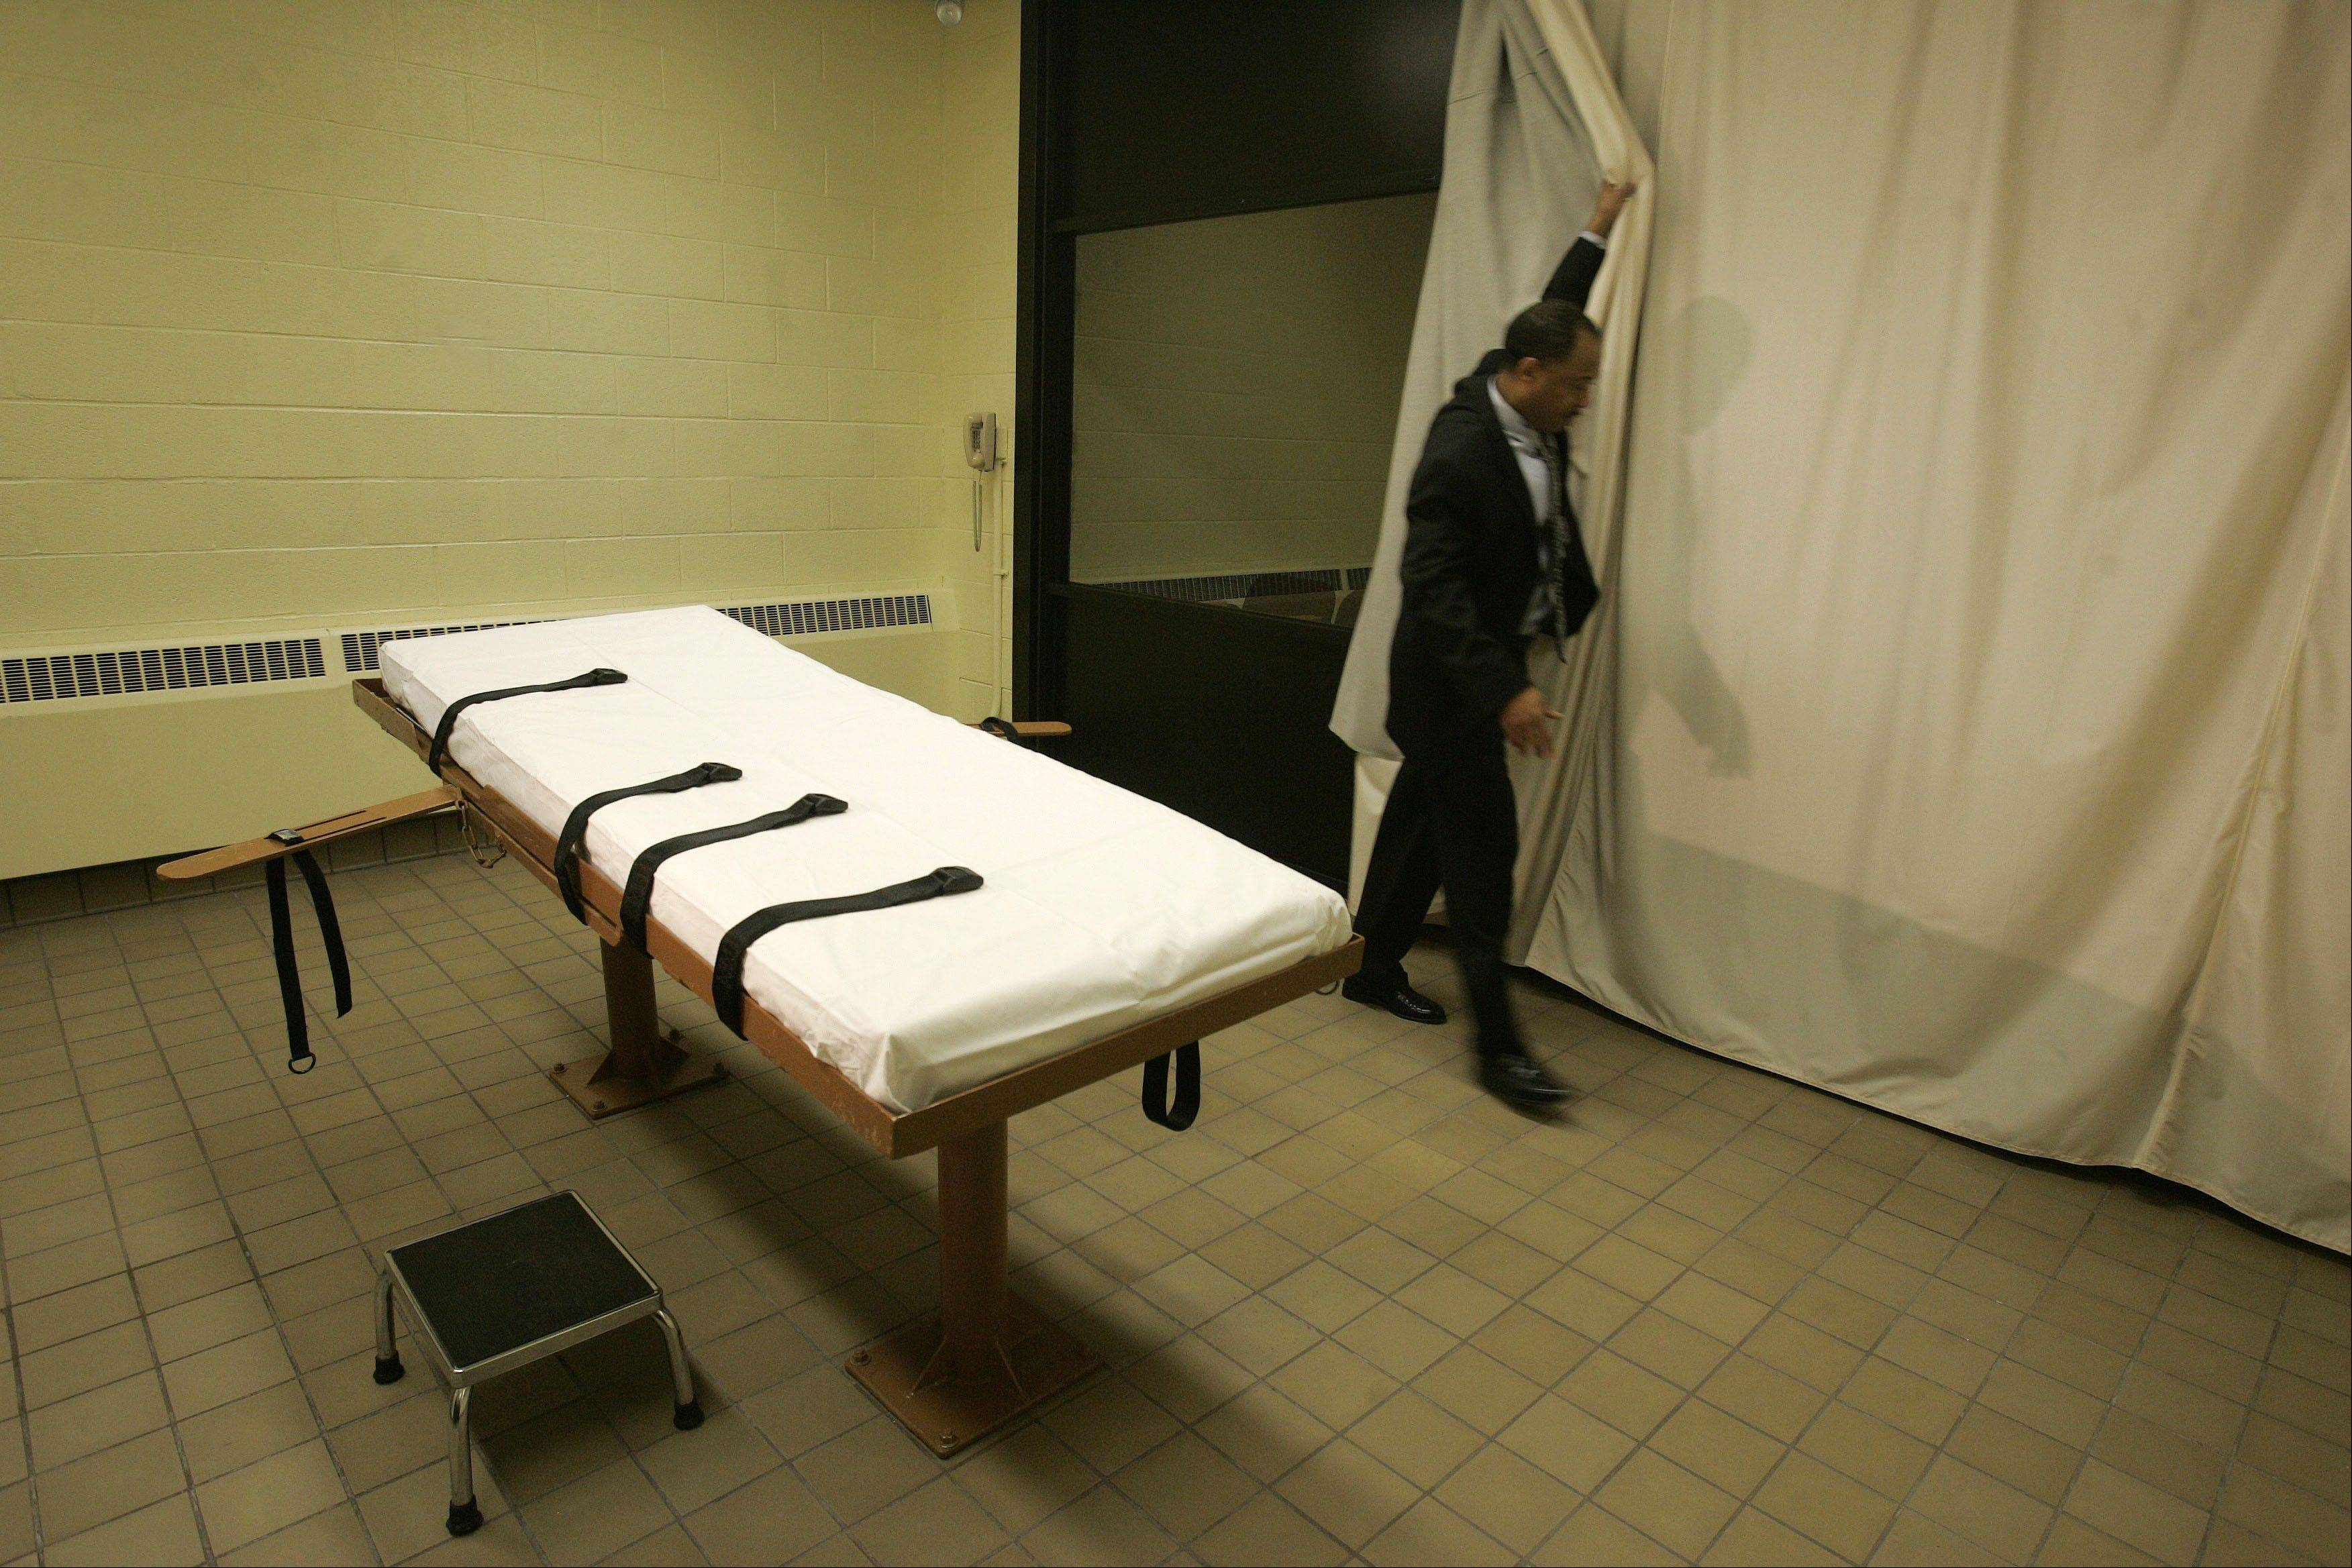 Ohio prison officials said Friday, Oct. 4, 2013, they are keeping their primary lethal injection drug in place despite the state�s supply expiring, but they�ve added a second drug option for executioners to address the shortage.